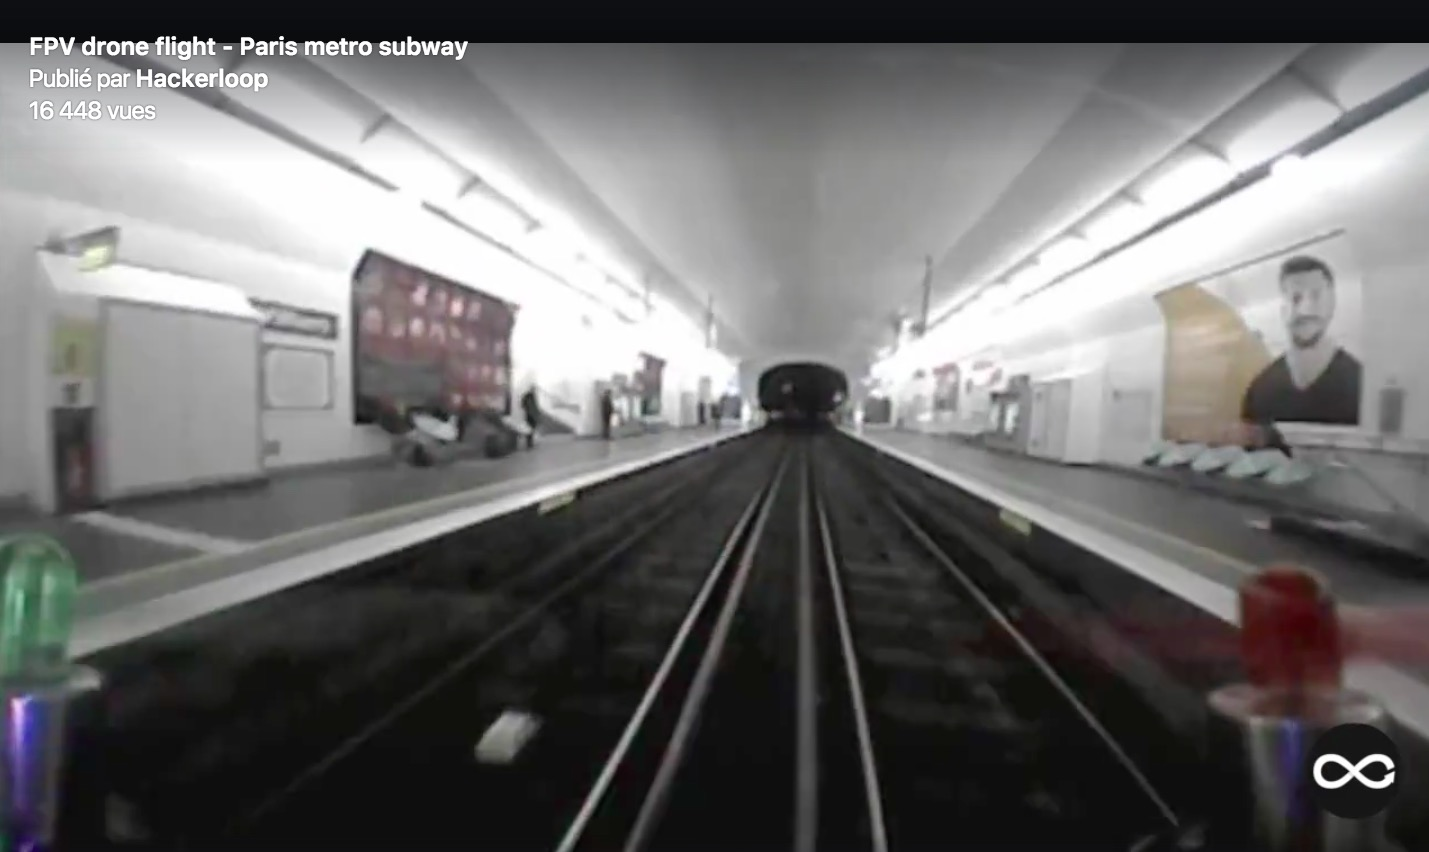 drone paris metro subway - Hackerloop 2017